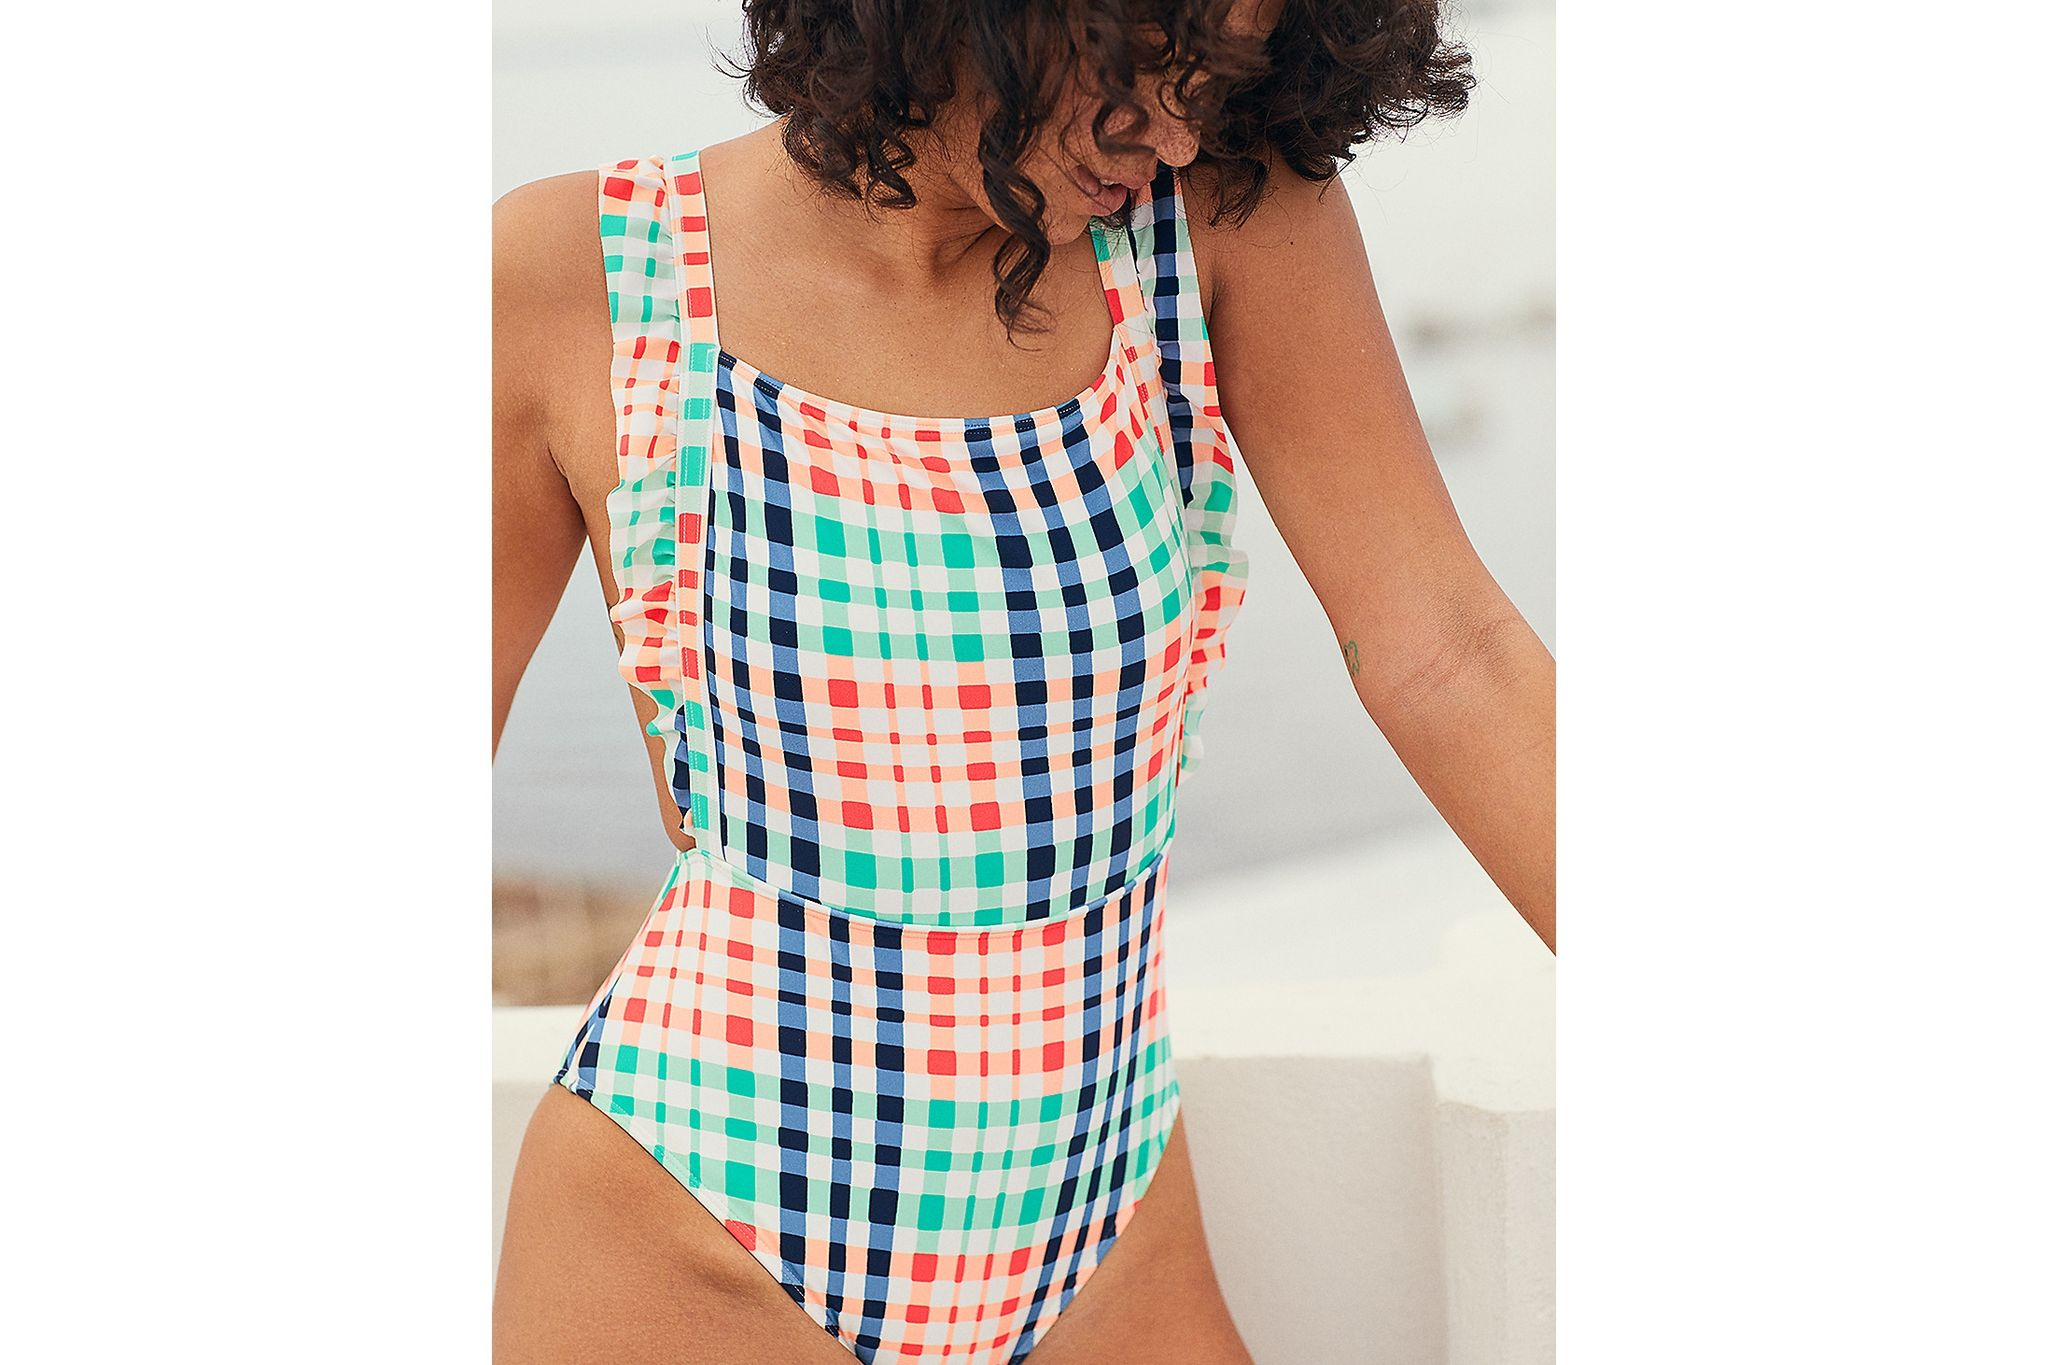 bf48e78c450 American Eagle Aerie Ruffle One Piece Swimsuit Price in Egypt ...